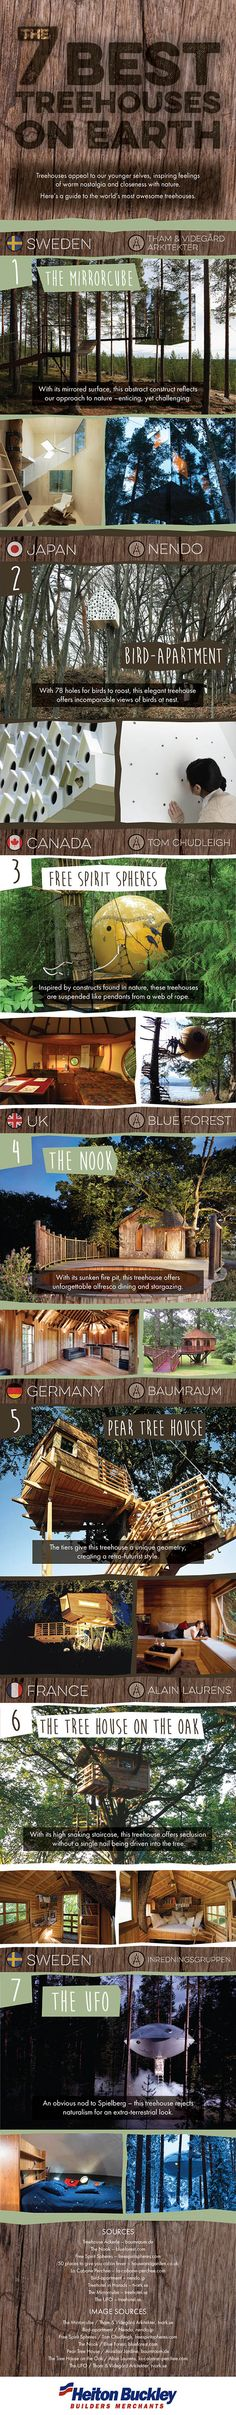 The Nook treehouse, The Pear Tree House, House in the Oak, the UFO treehouse, NeoMam Studios, treehouses, infographic, treehouses infographic, treehouse designs, mirrorcube, free spirit spheres, bird apartment,